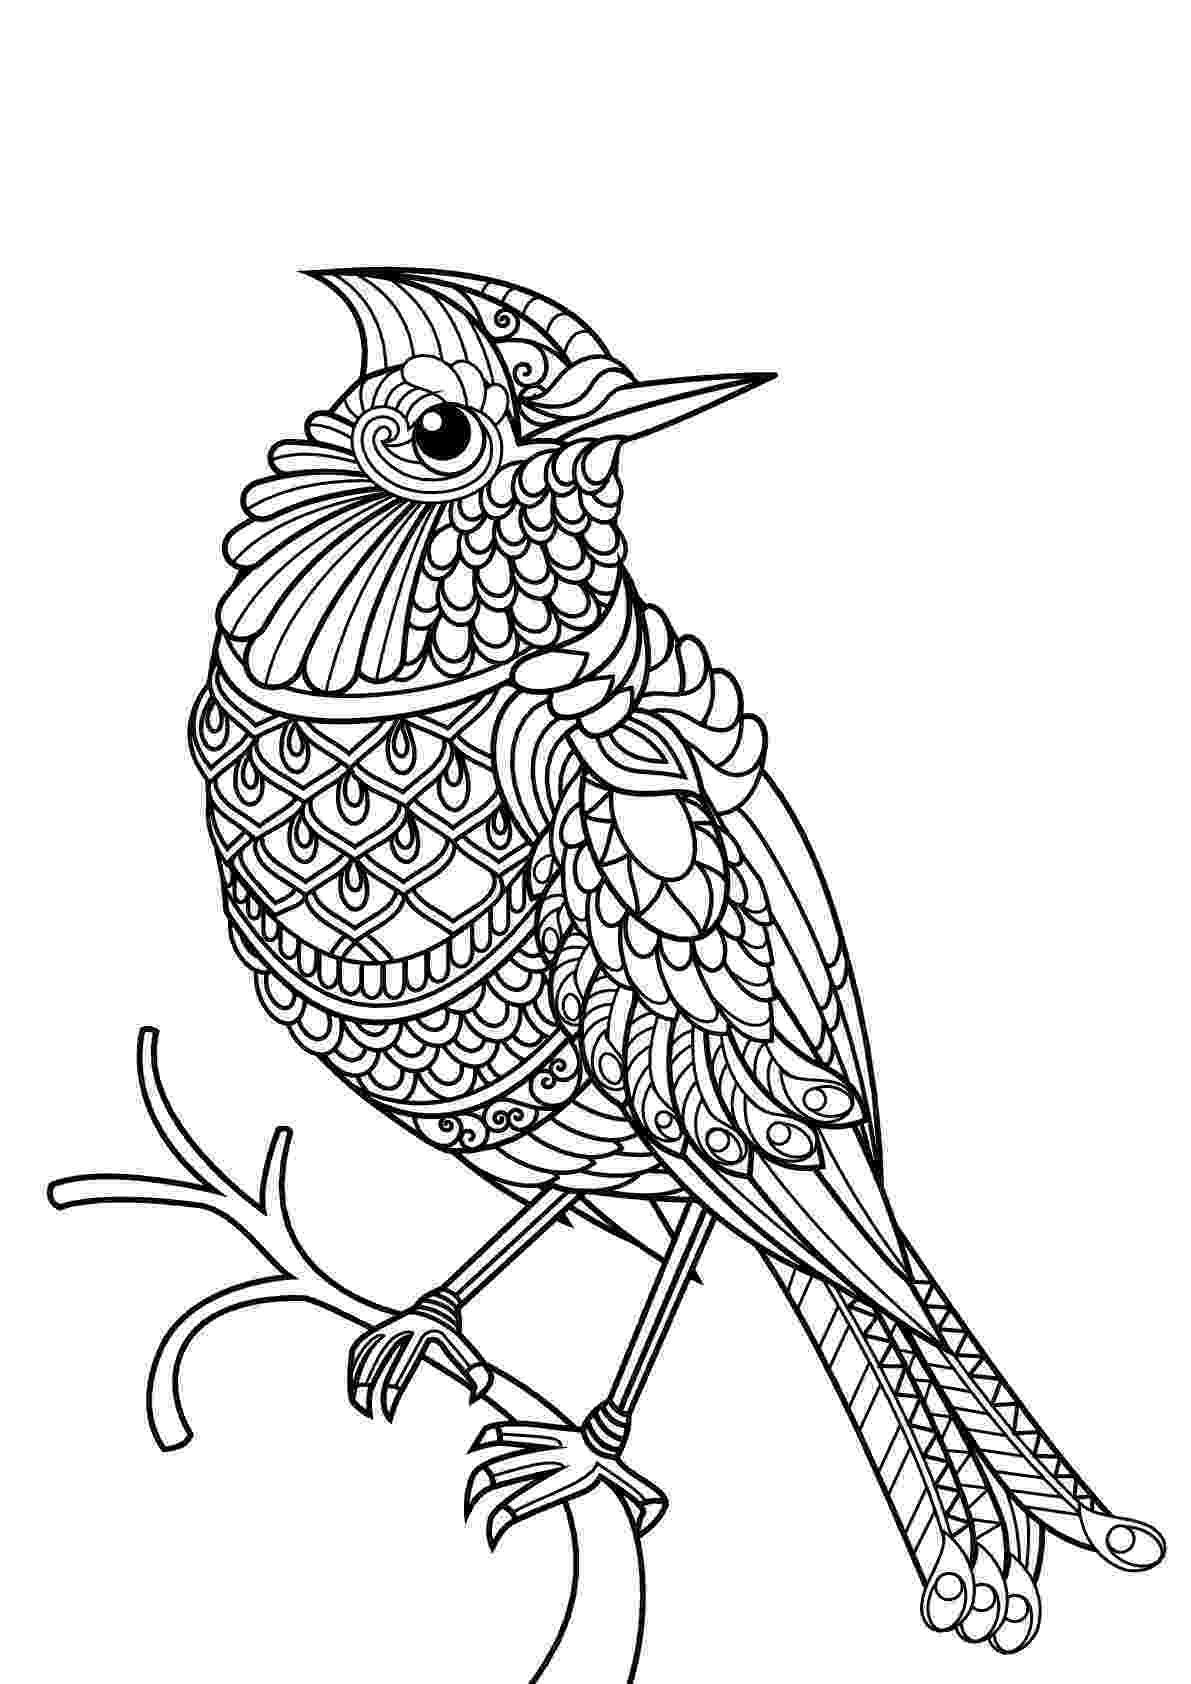 bird coloring pages to print blue jay bird coloring page free printable coloring pages bird to coloring print pages